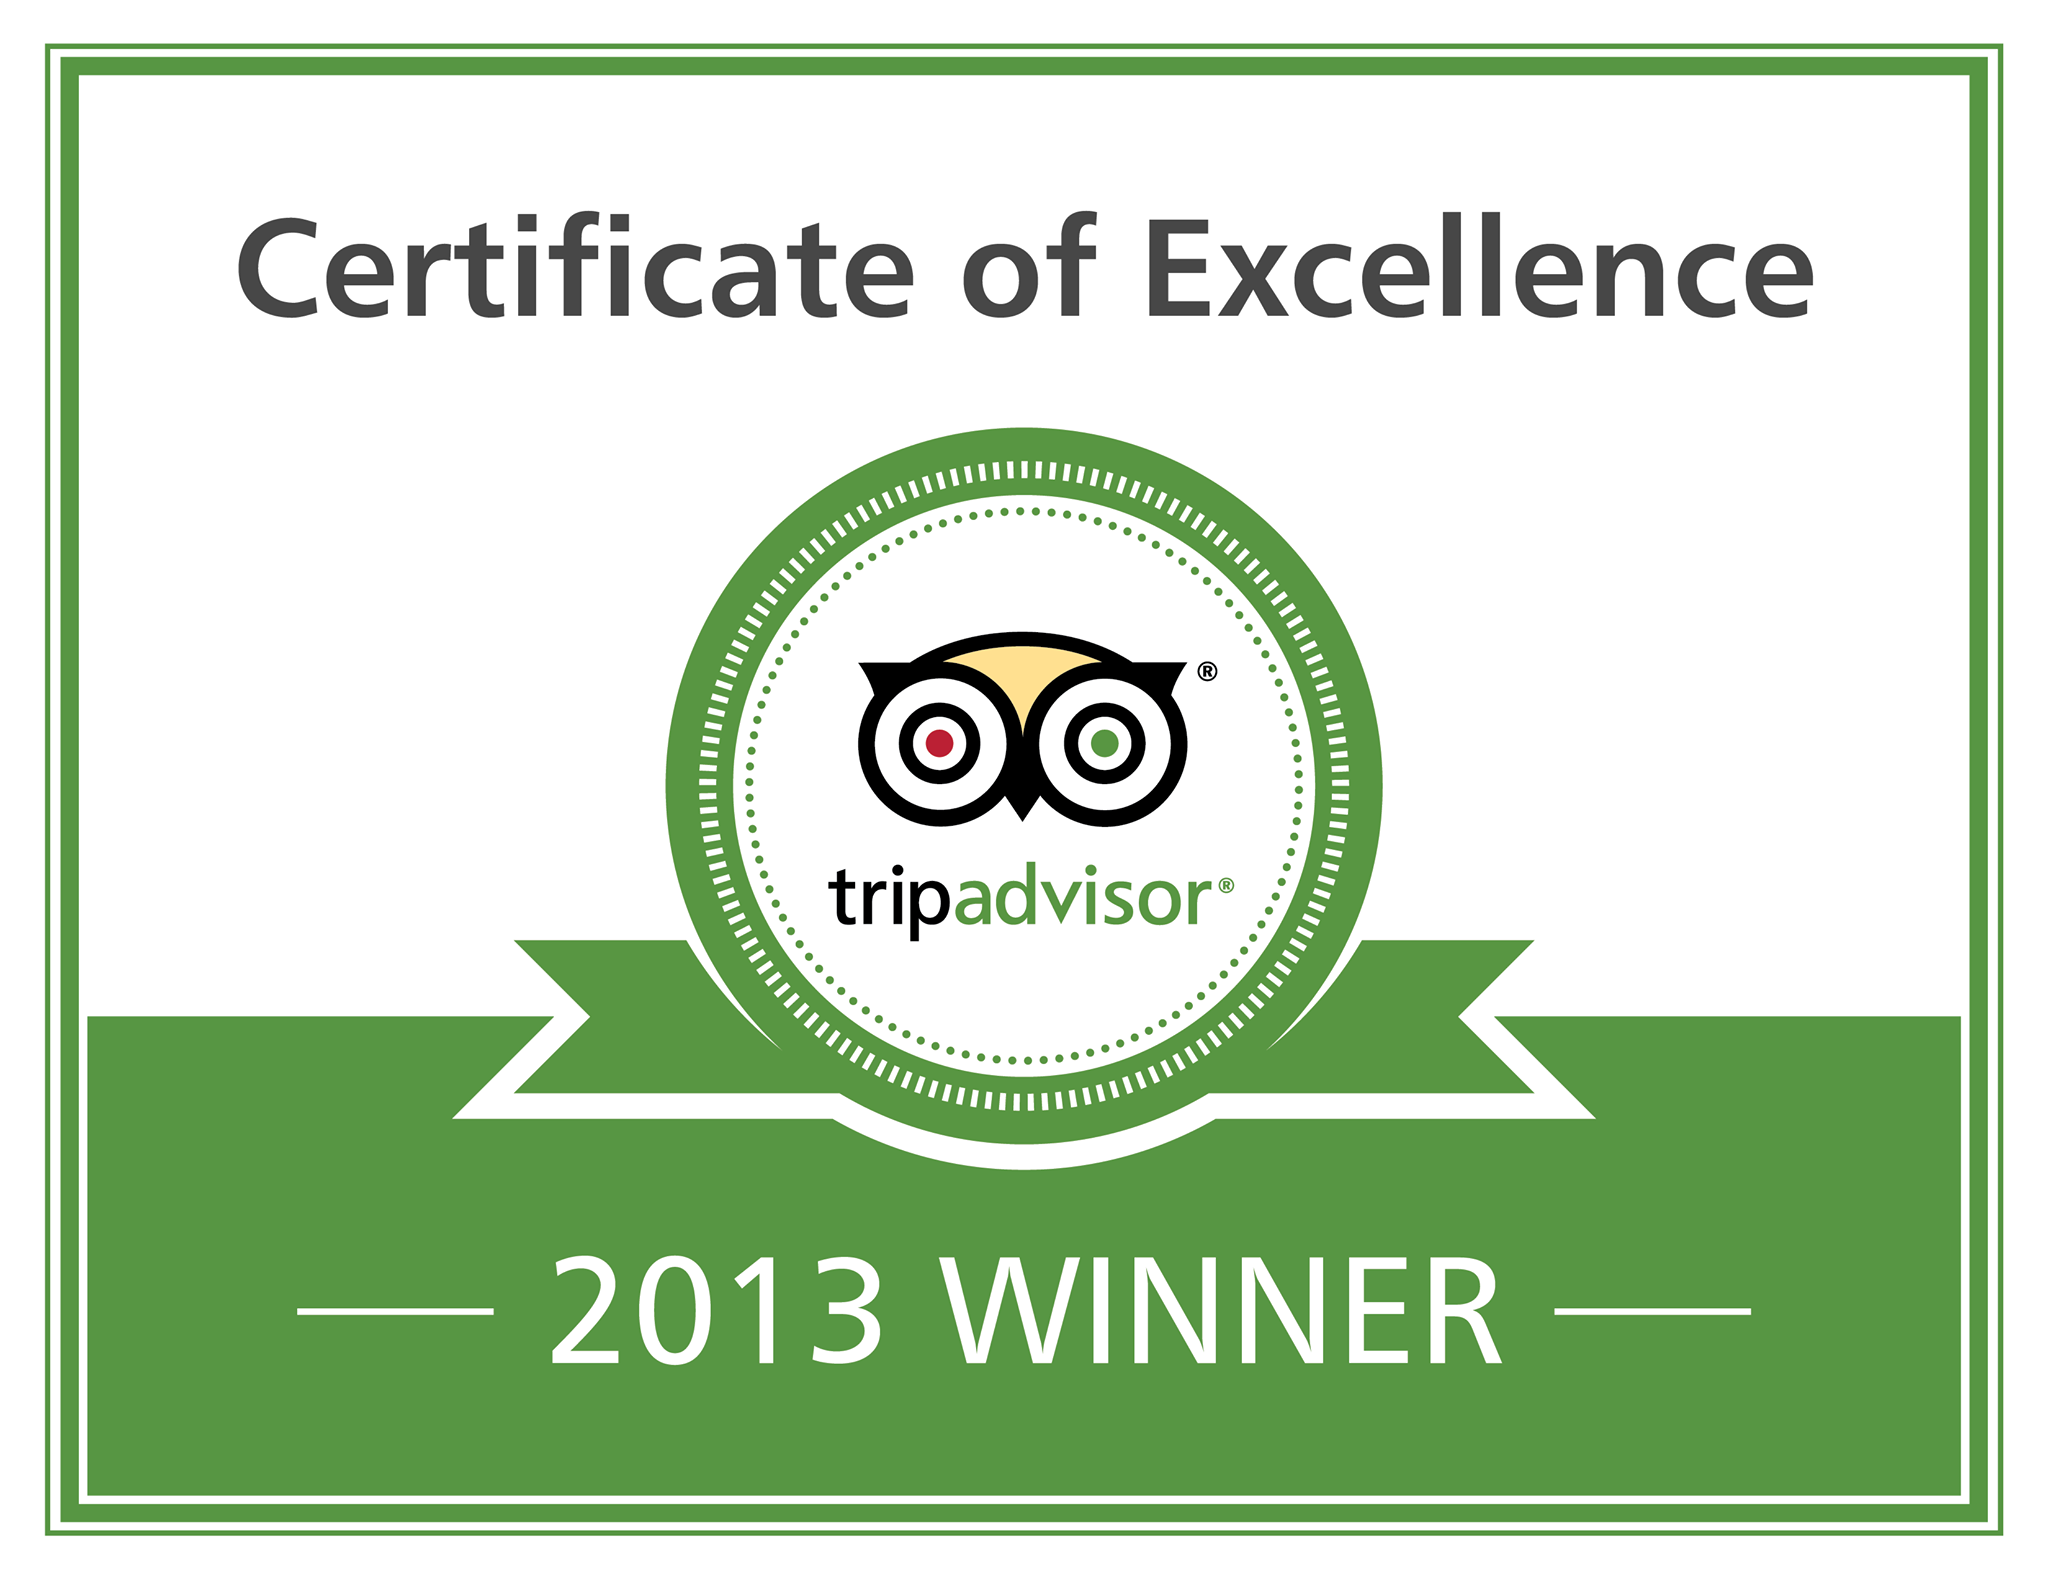 Somewhere Restaurant Trip Advisor 2013 Certificate of Excellence – Congratulations Certificate